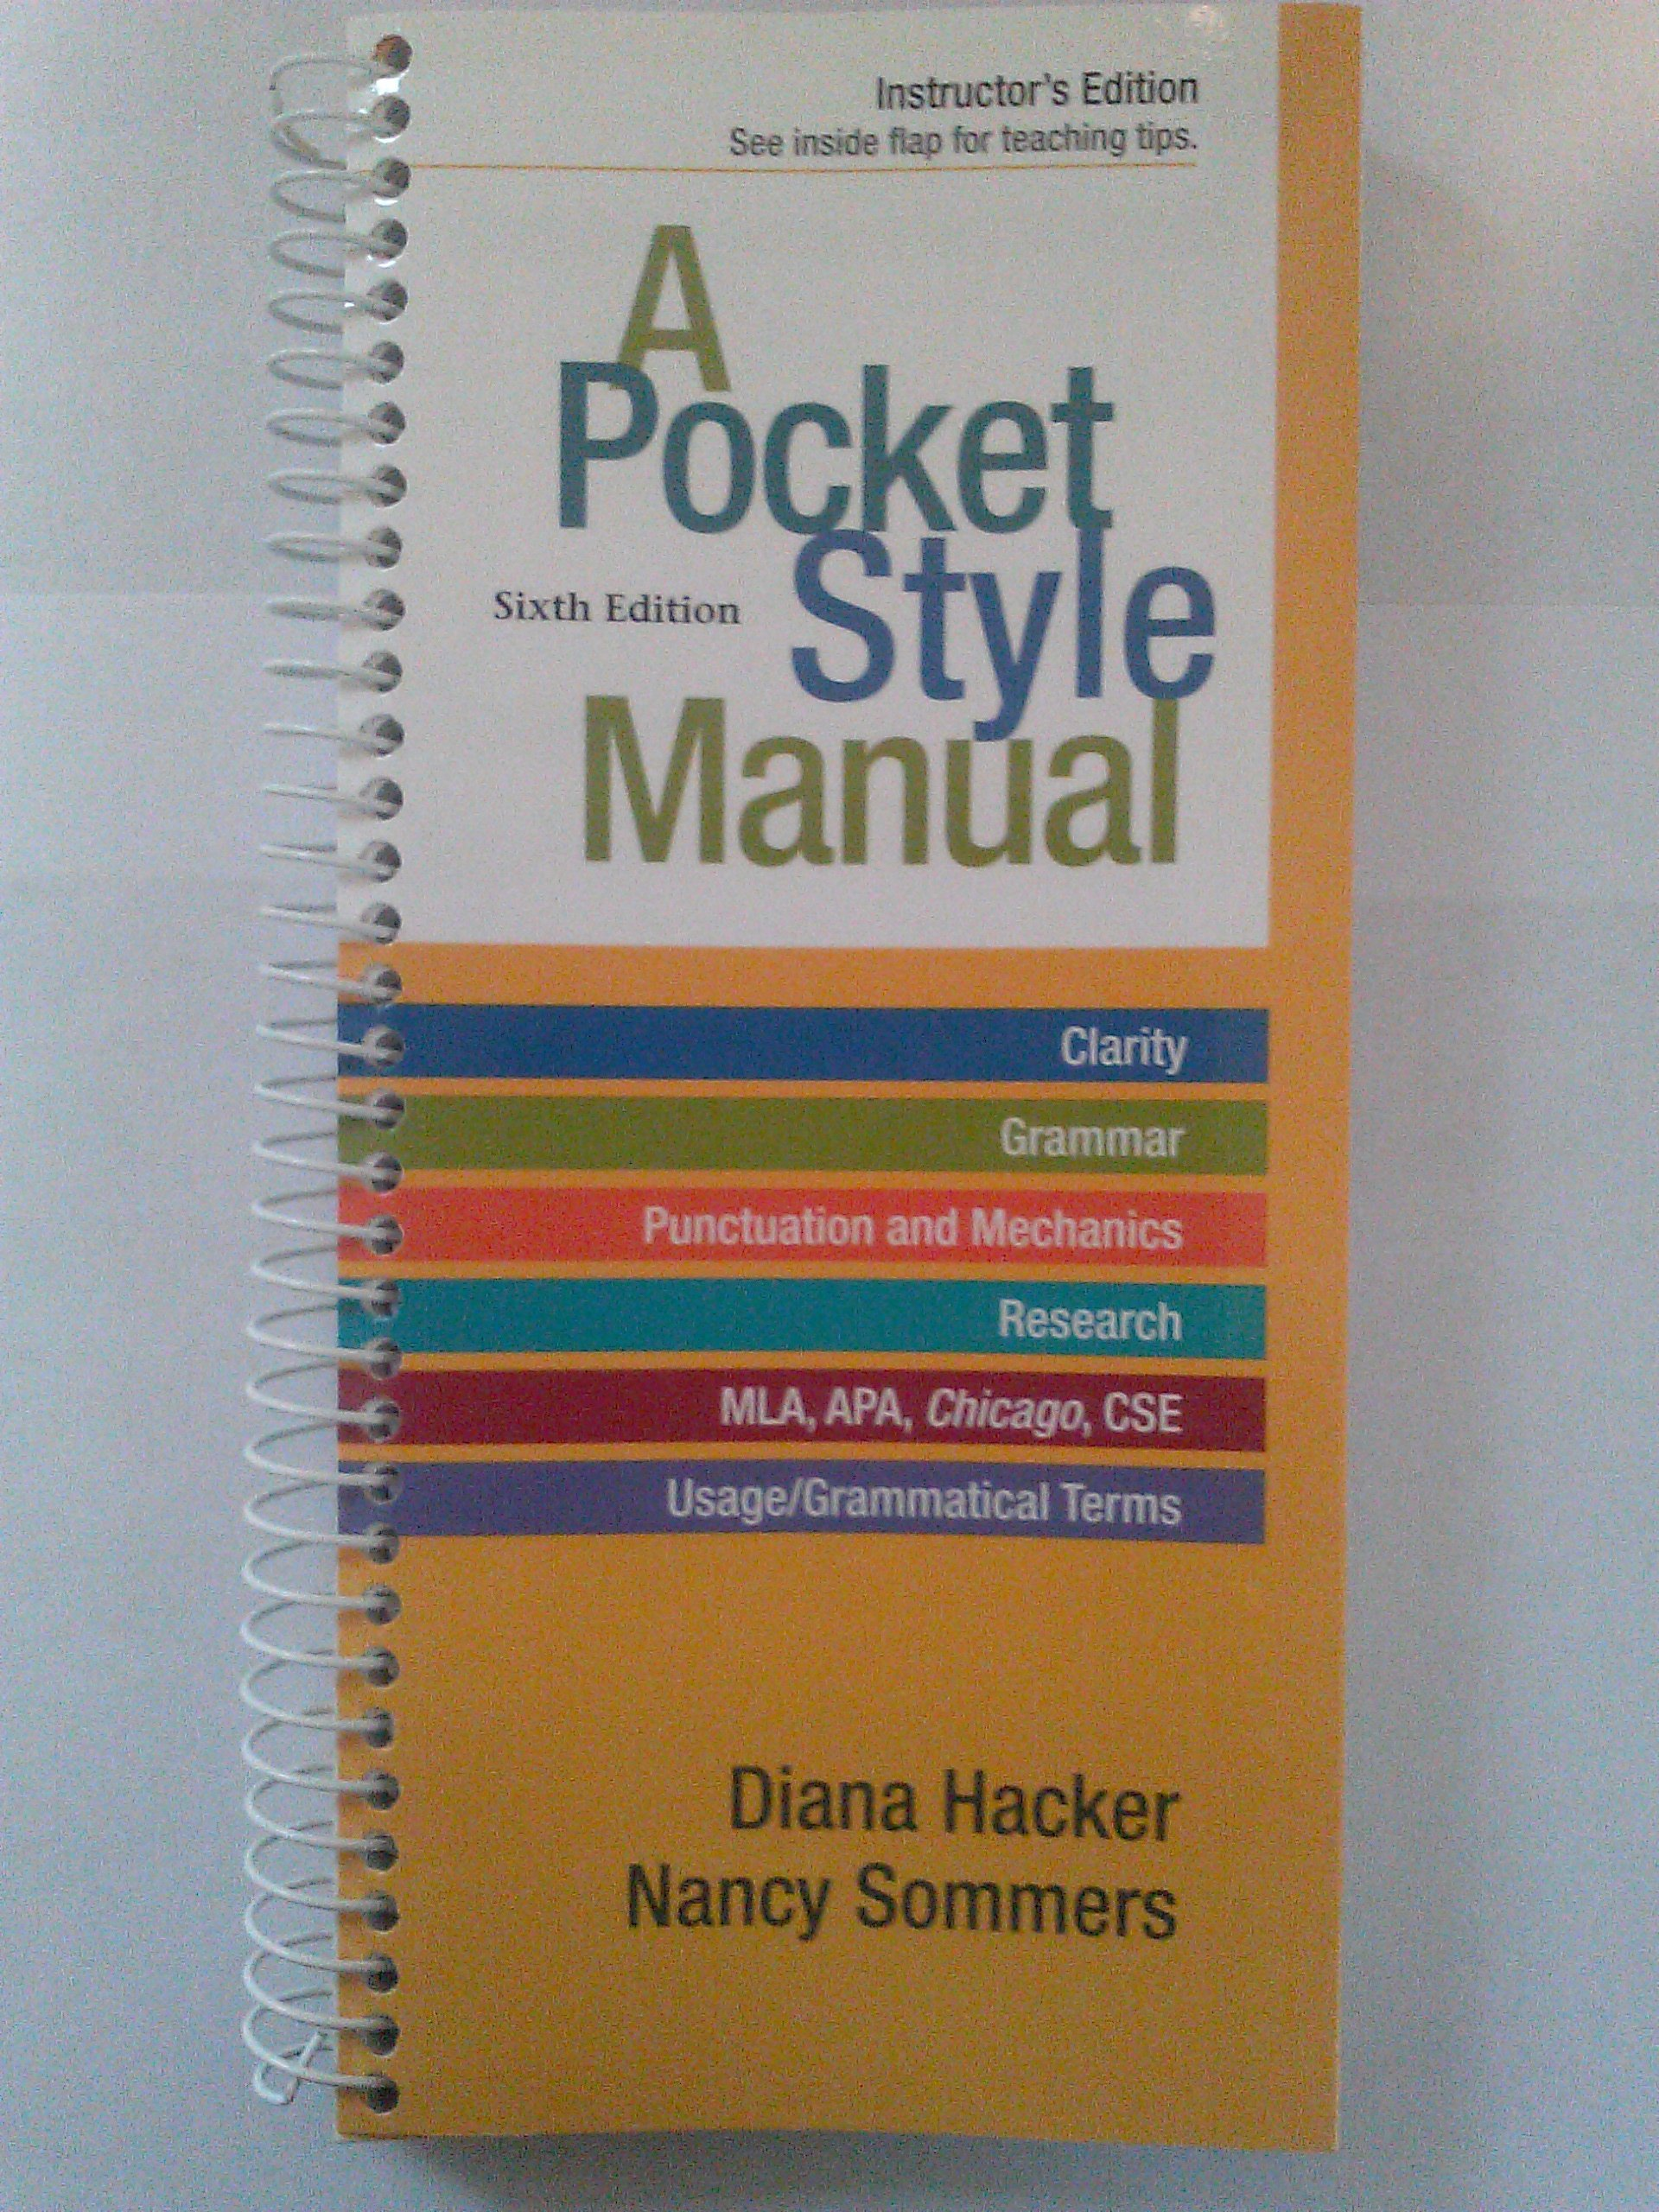 Pdf-1887] diana hacker pocket style manual | 2019 ebook library.